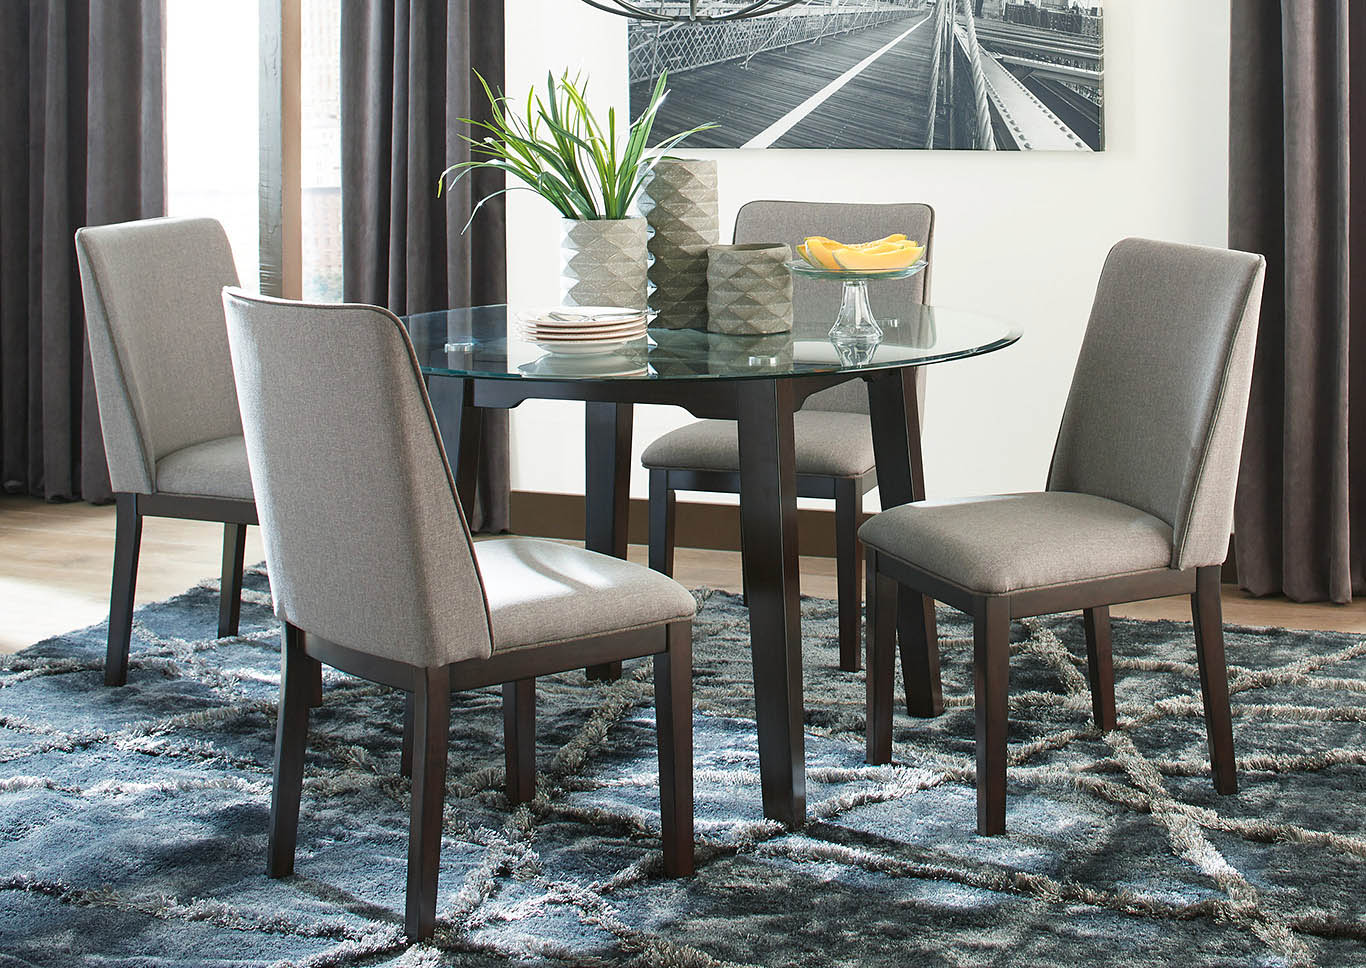 Chanceen 5 Piece Dining Room Set